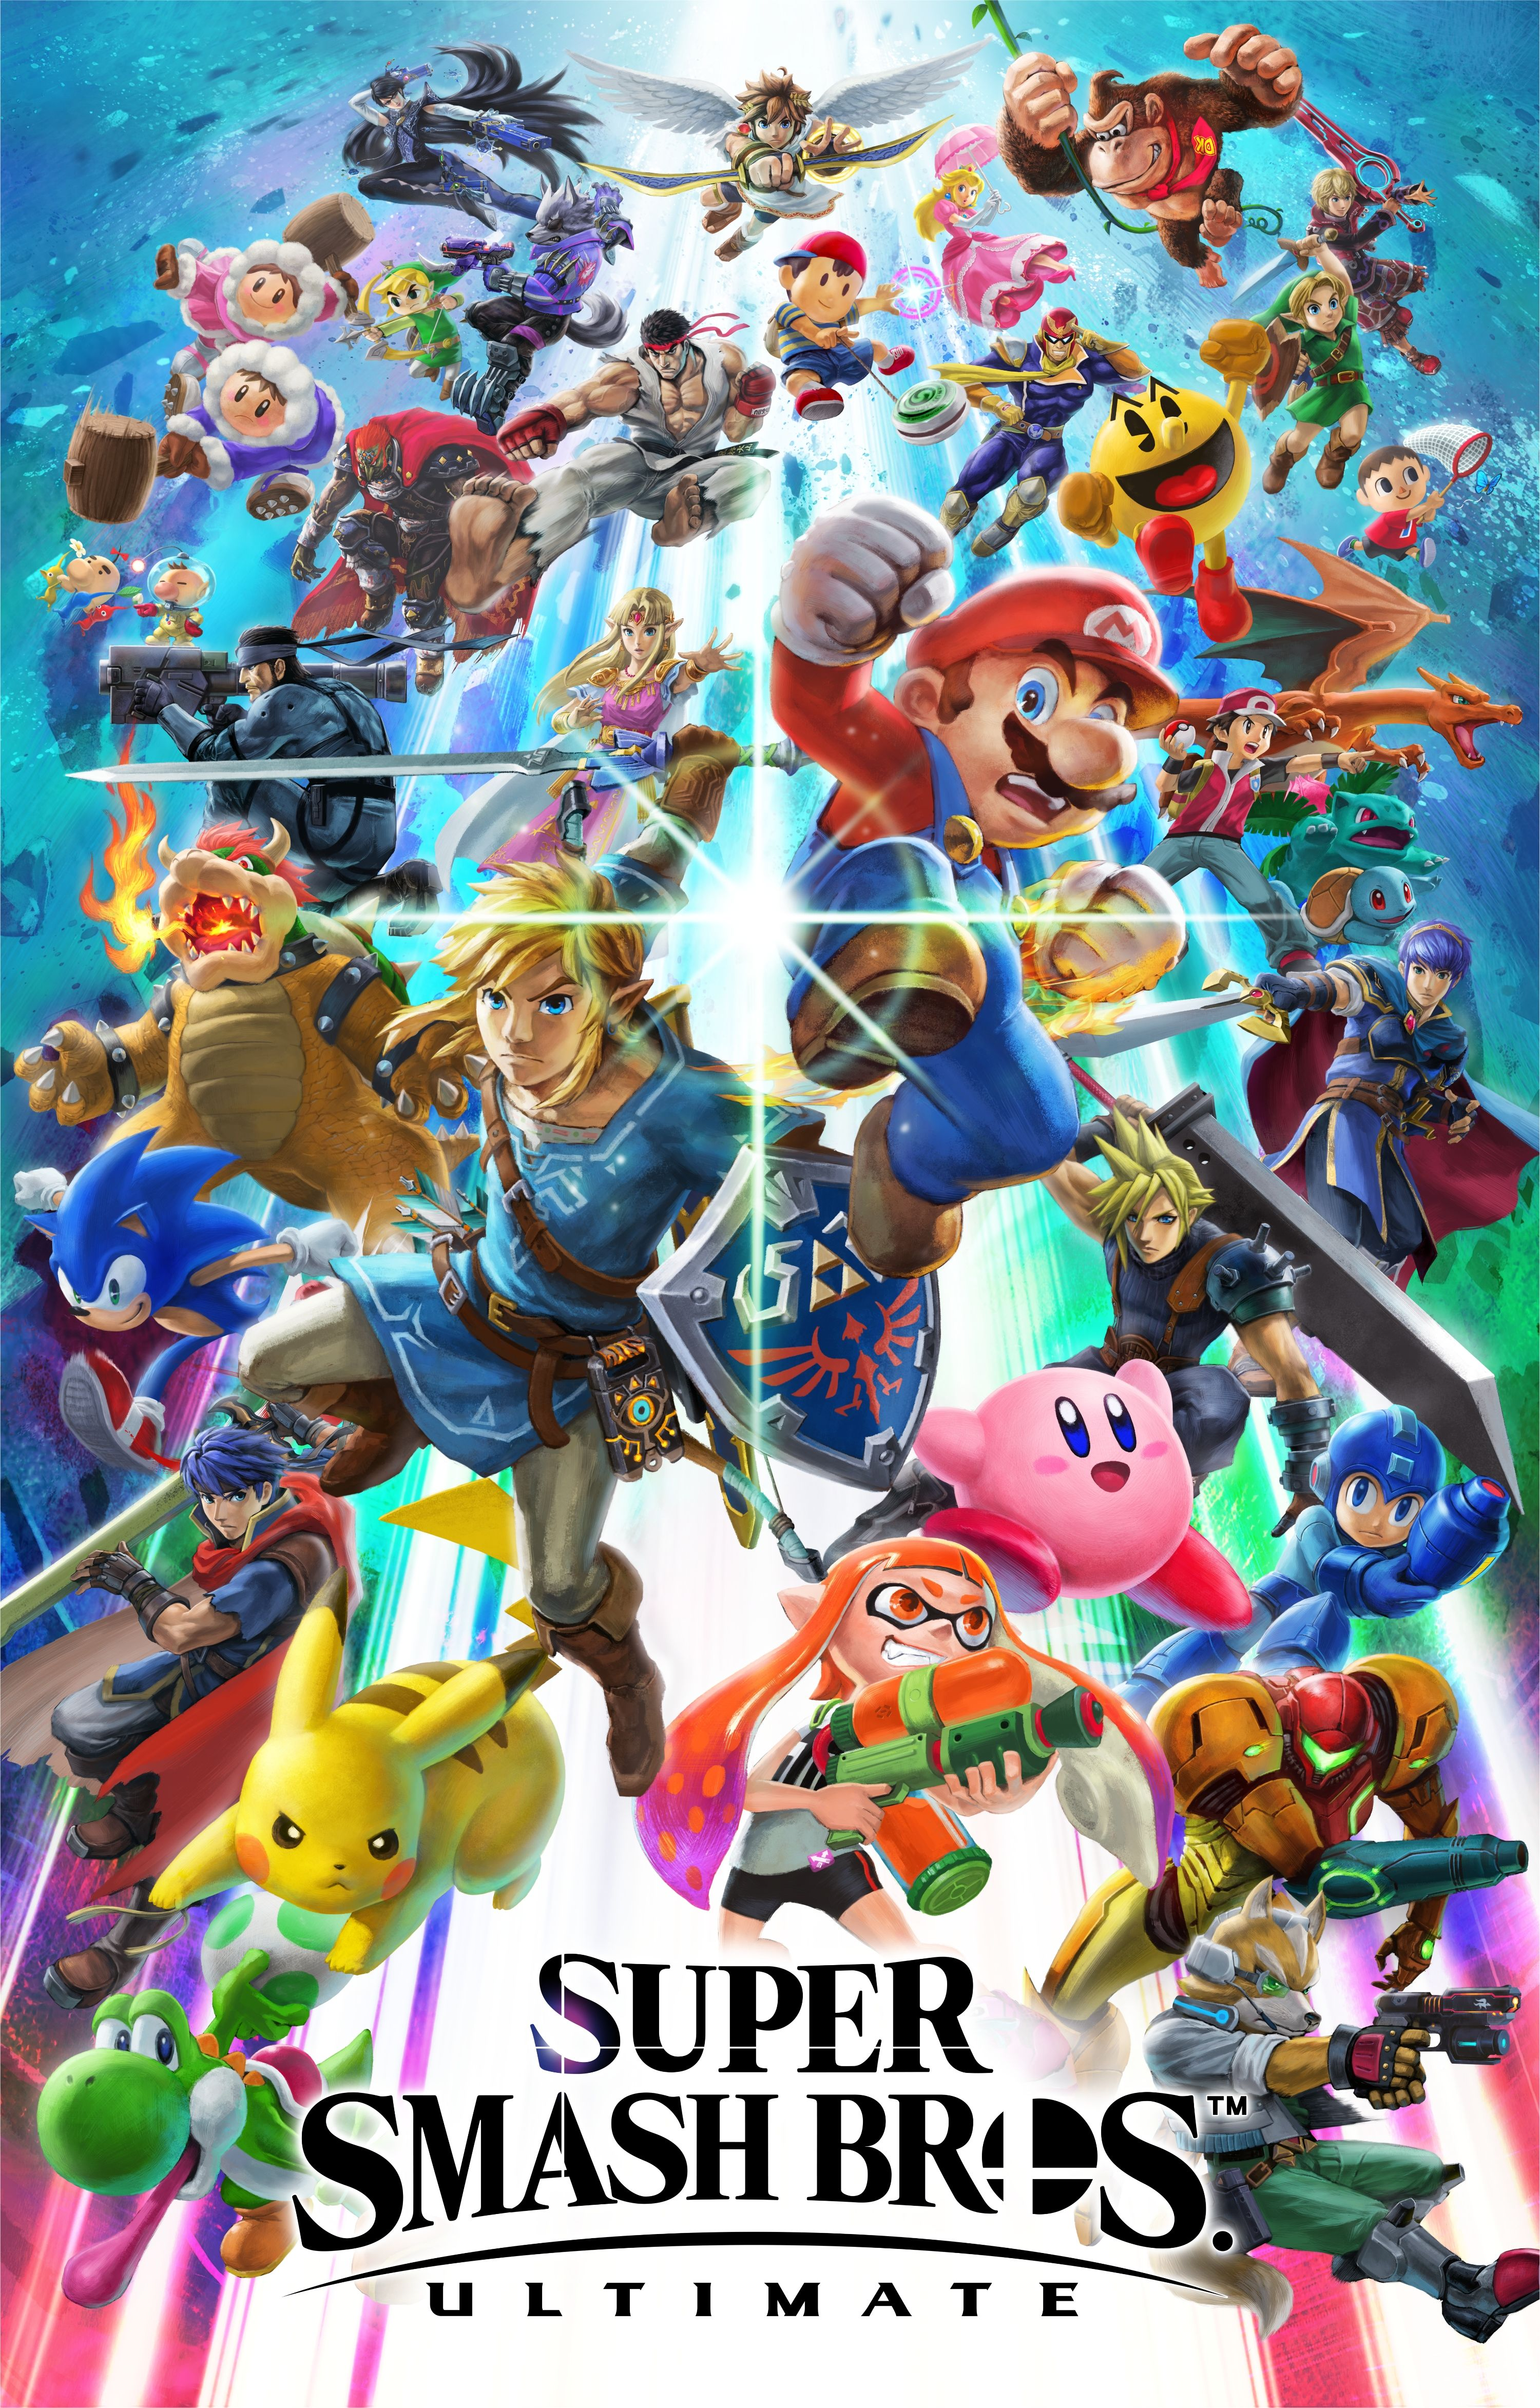 Free Download High Resolution Smash Bros Ultimate Artwork